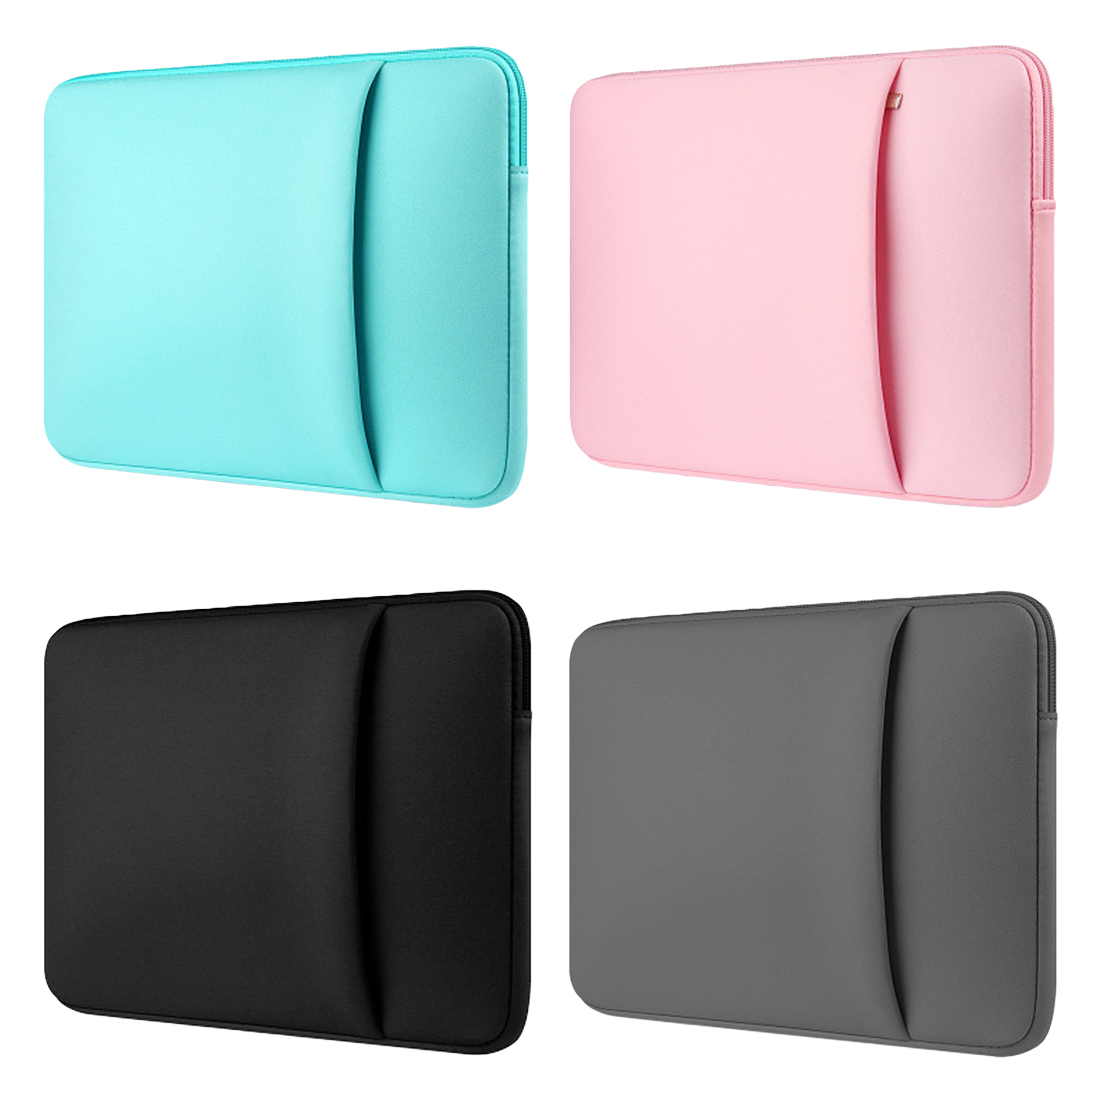 Notebook Sleeve Laptop Bag For Macbook Air 13 Pro 11 12 15 15.6 Case Laptop Bag 11 13 14 15 Inch Protective Case Liner Bags